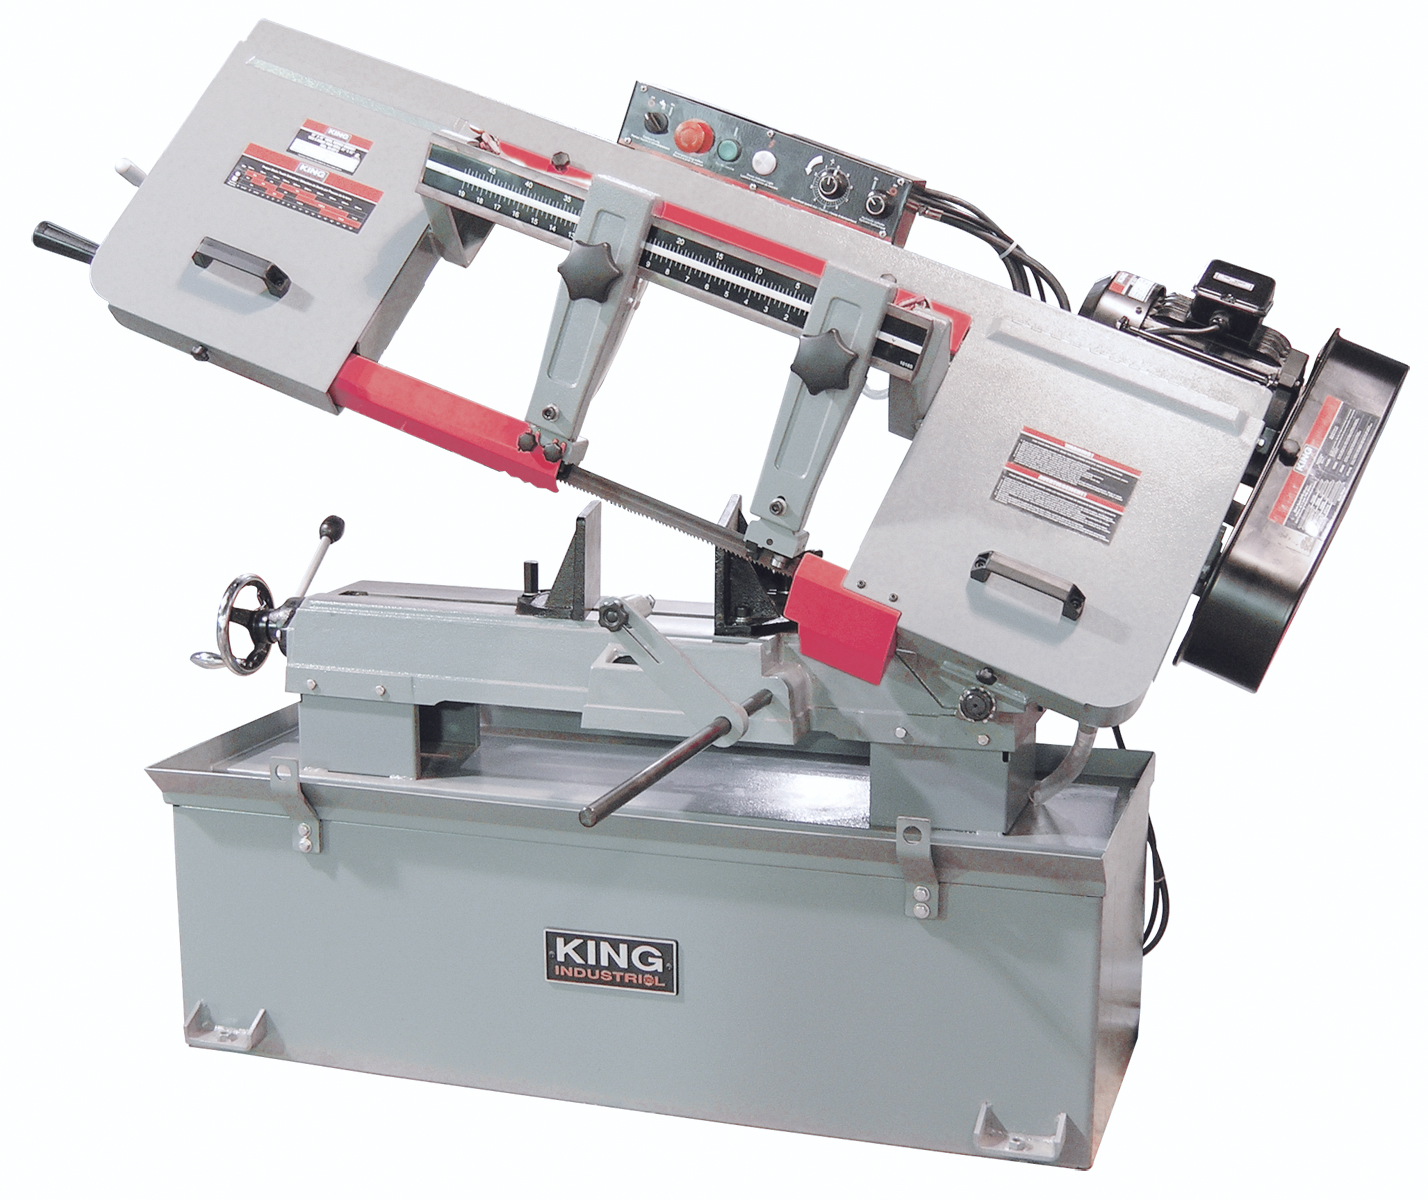 King Industrial KC-227-6 Bandsaw, Metal, 10 x 18, 600V